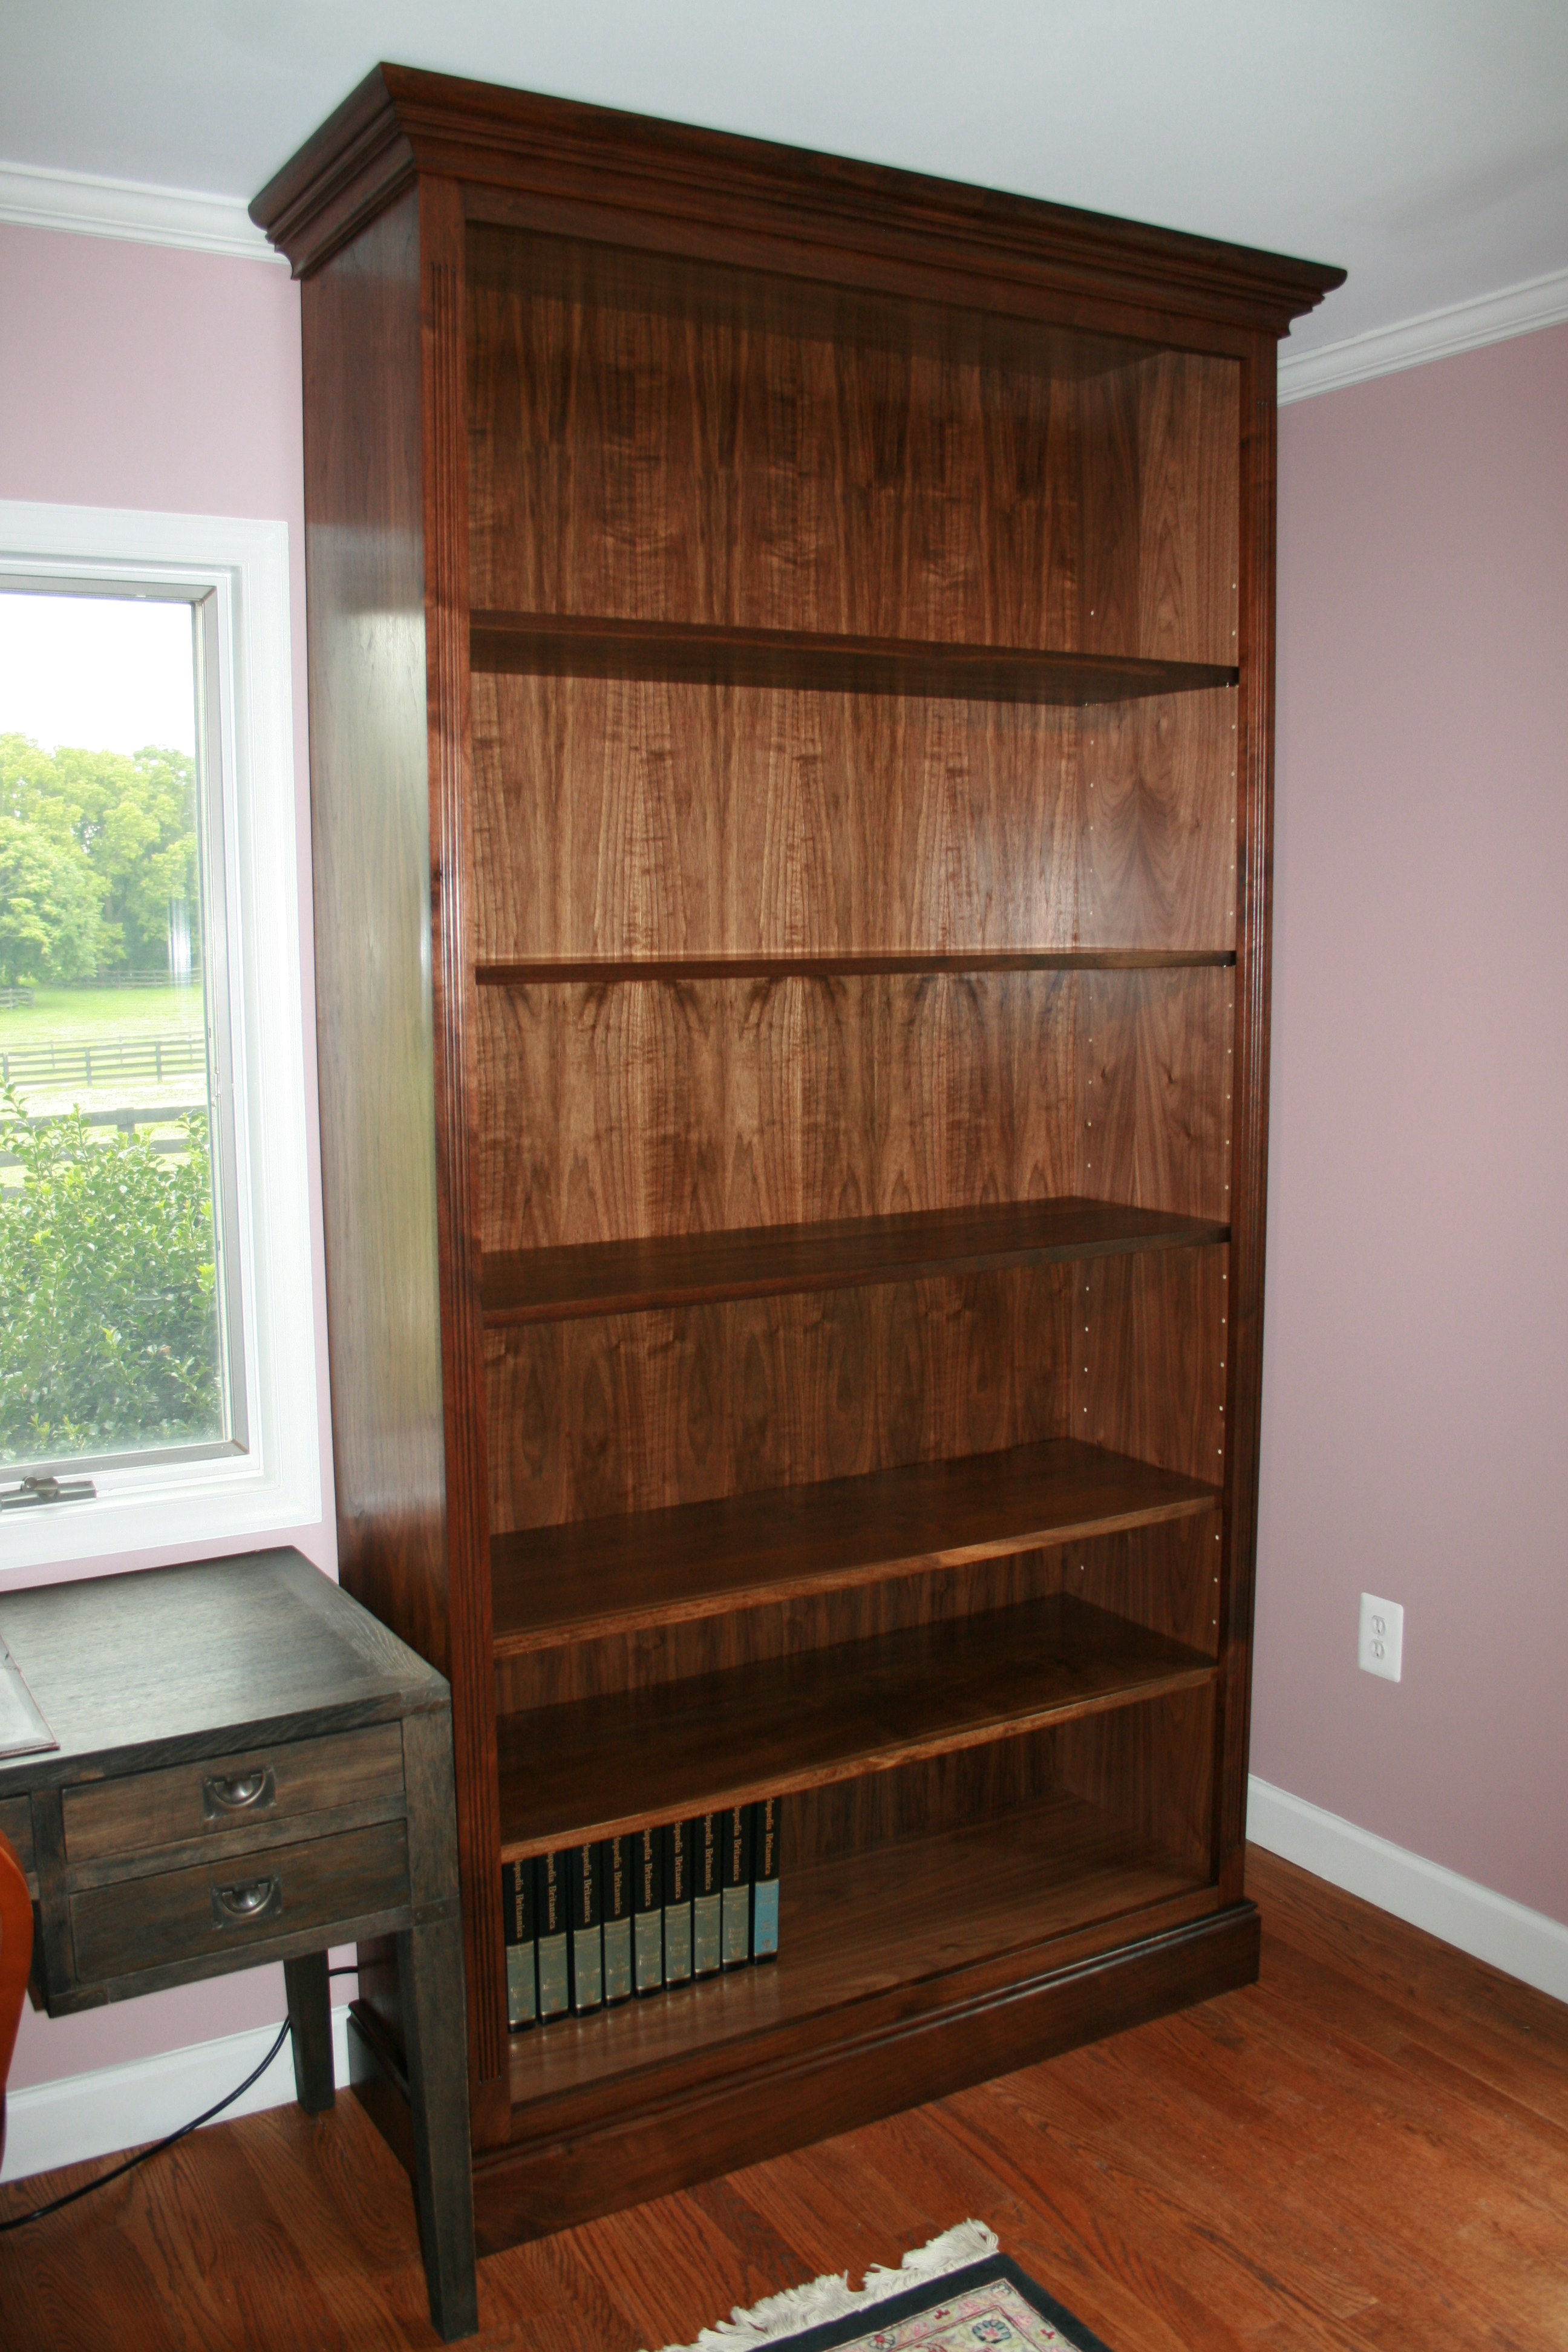 h bookcases pop prod x cm home loading by l white york bookcase up new